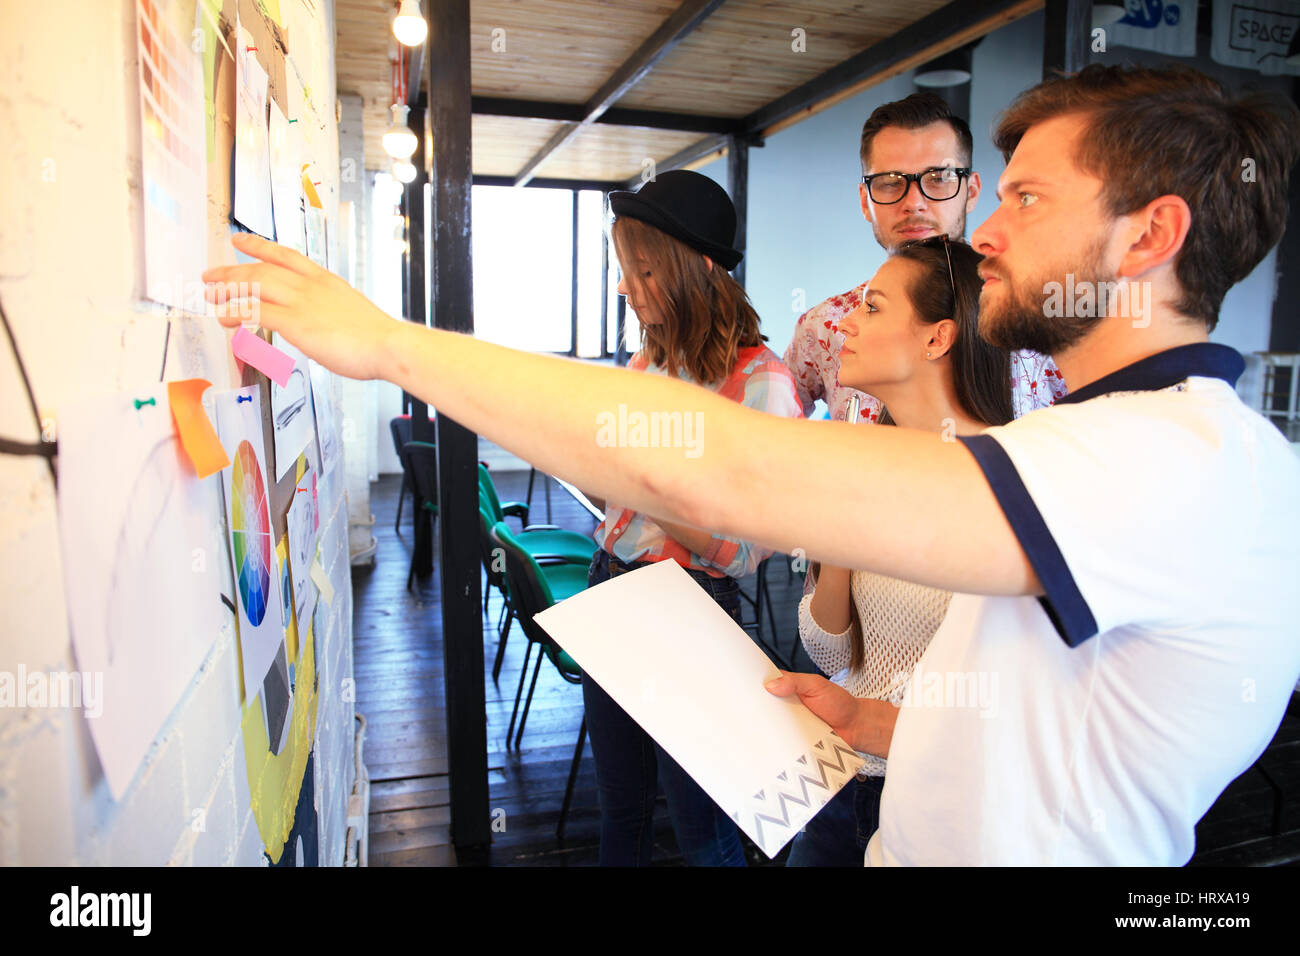 Businessman with young partners looking at whiteboard in creative office - Stock Image